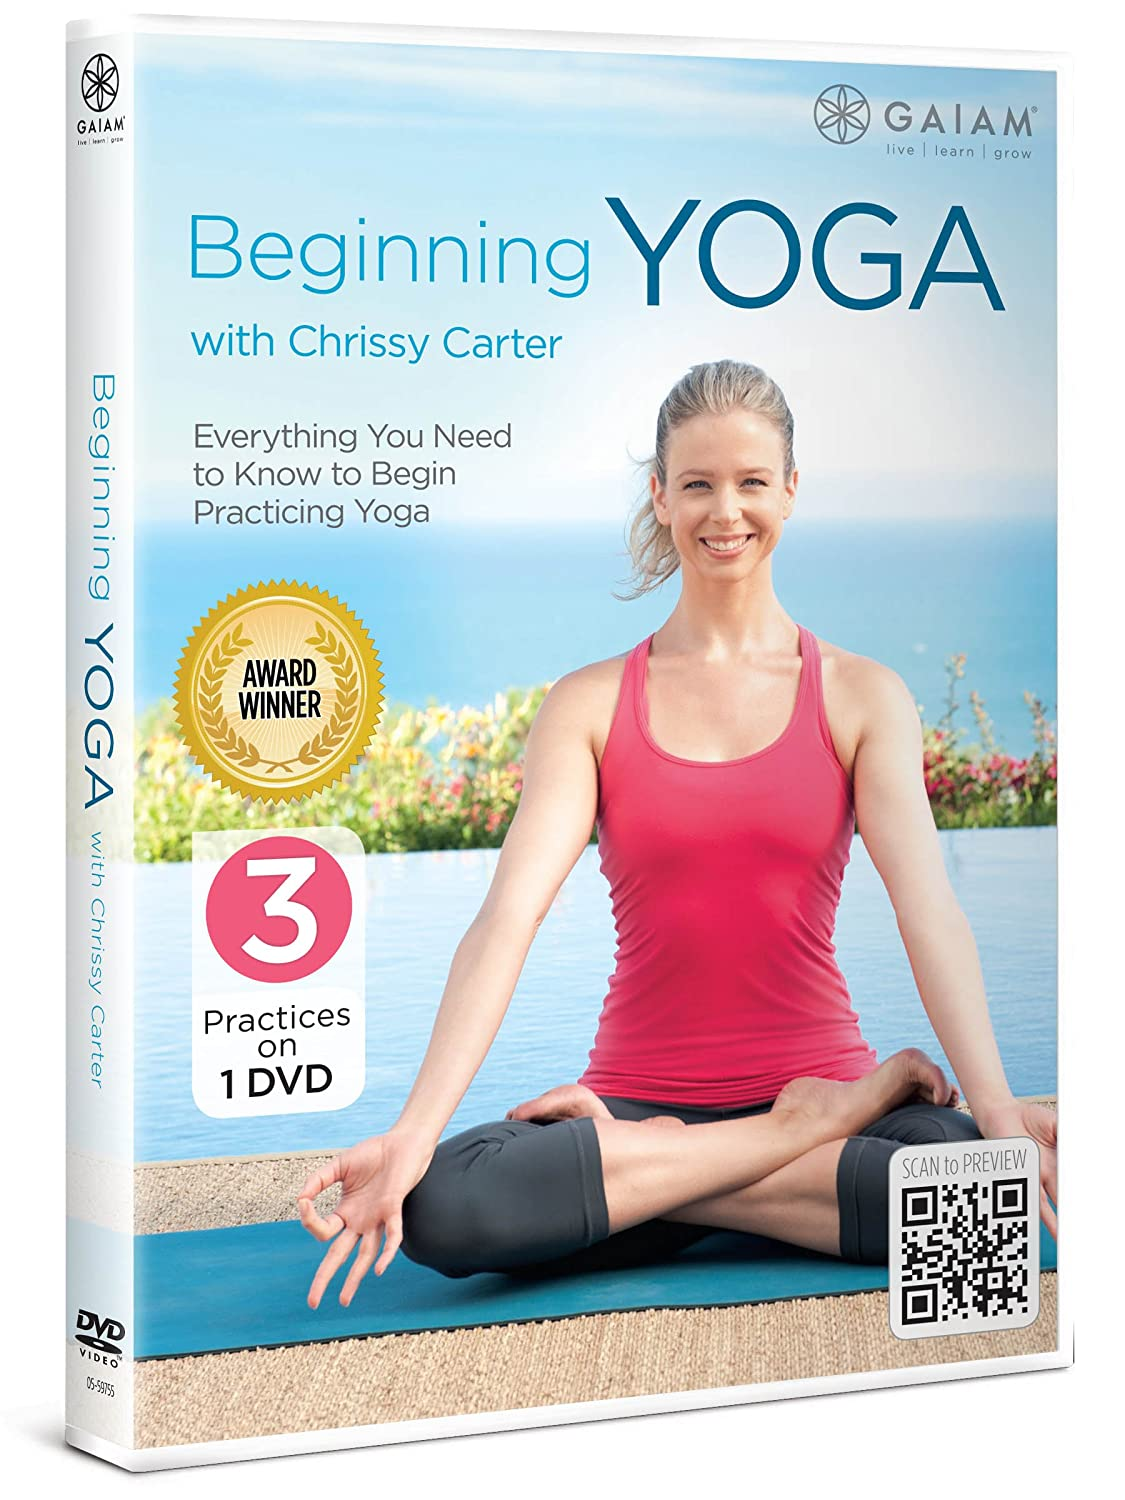 Amazon.com: Beginning Yoga with Chrissy Carter: Chrissy Carter, N/a ...